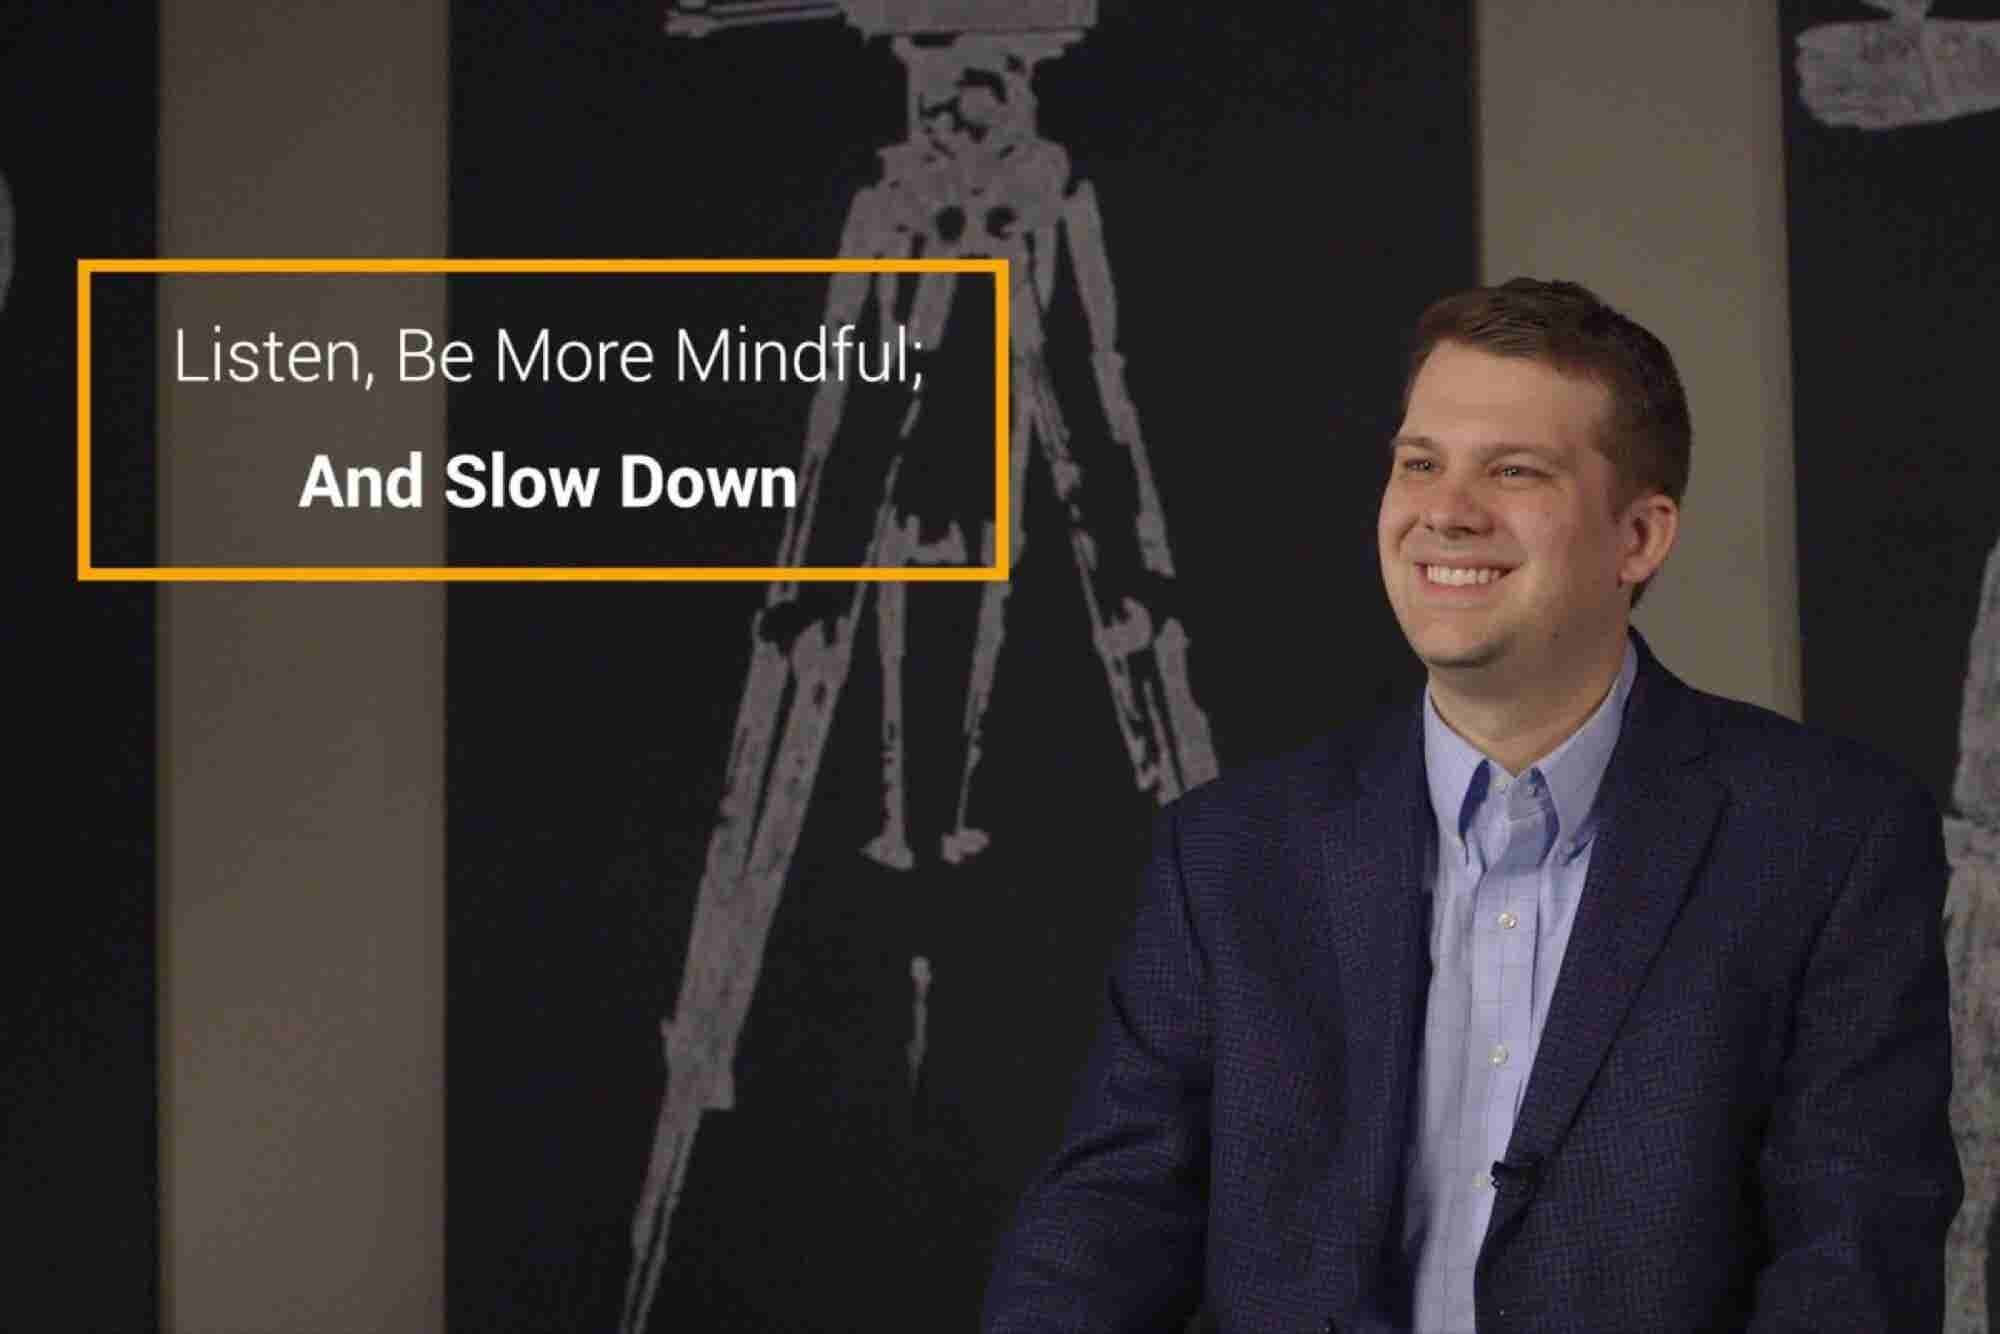 Listen, Be More Mindful and Slow Down